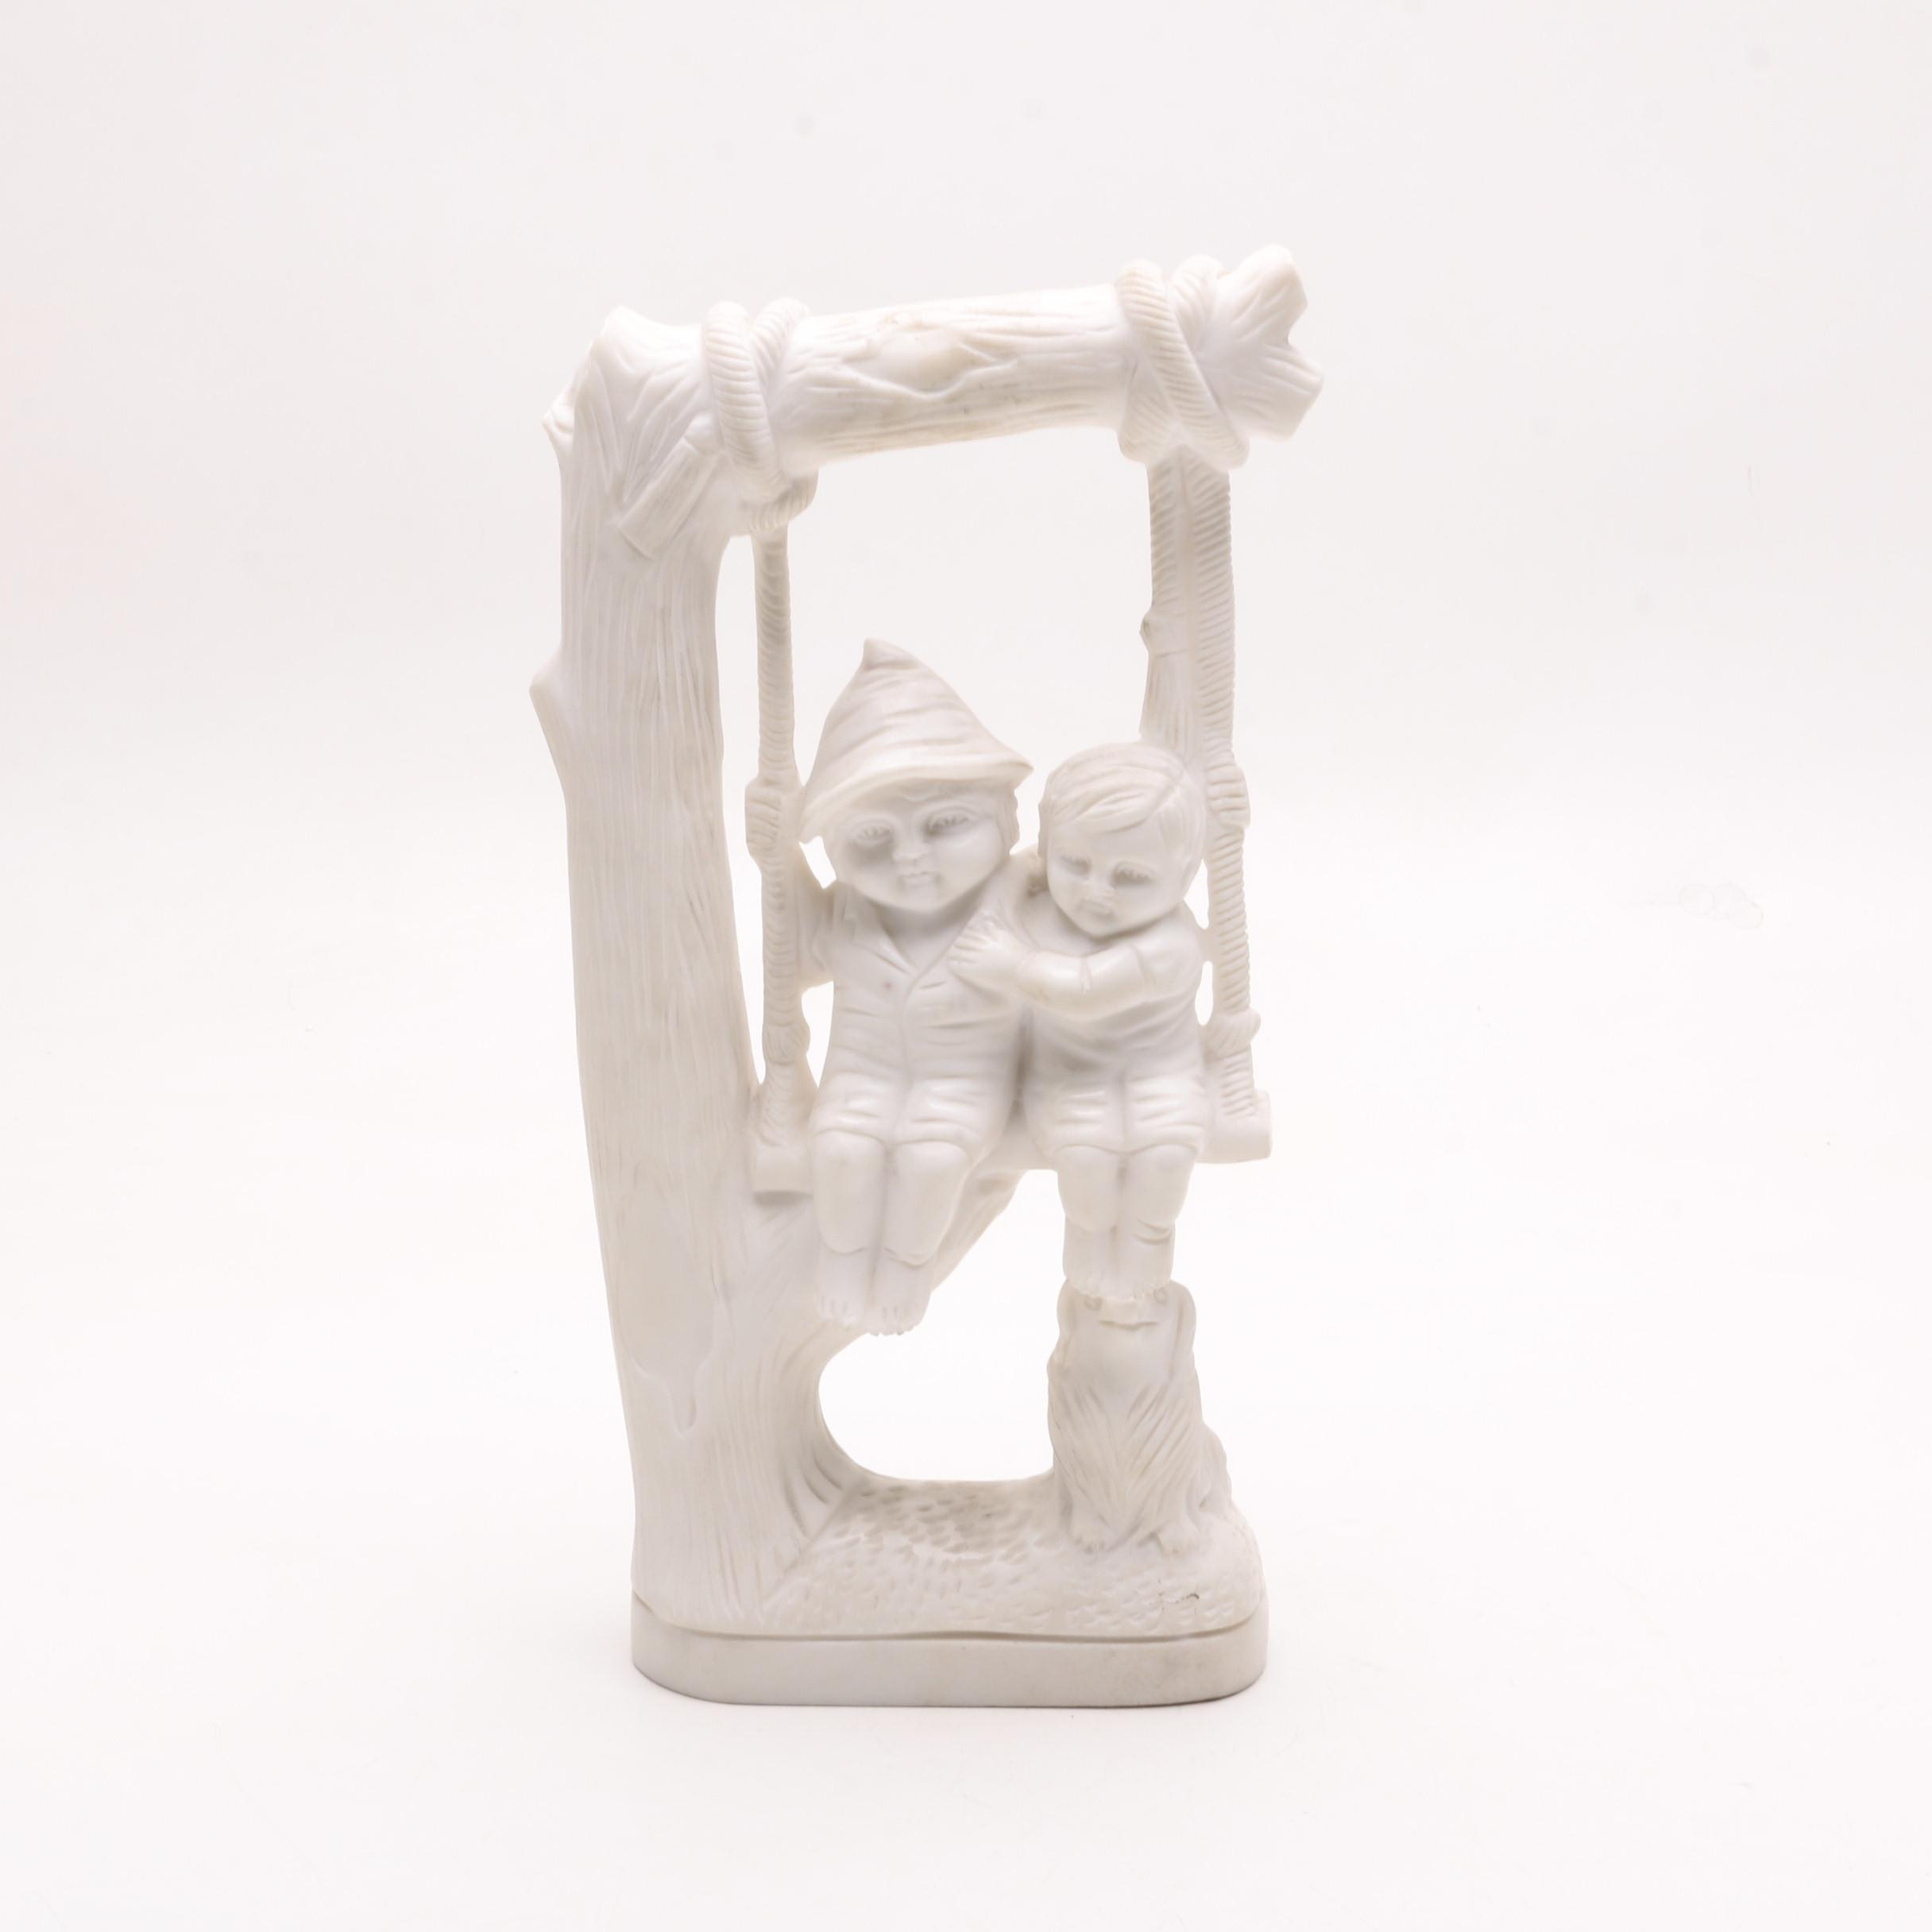 Fine Grained Marble Figurine of Children on a Swing